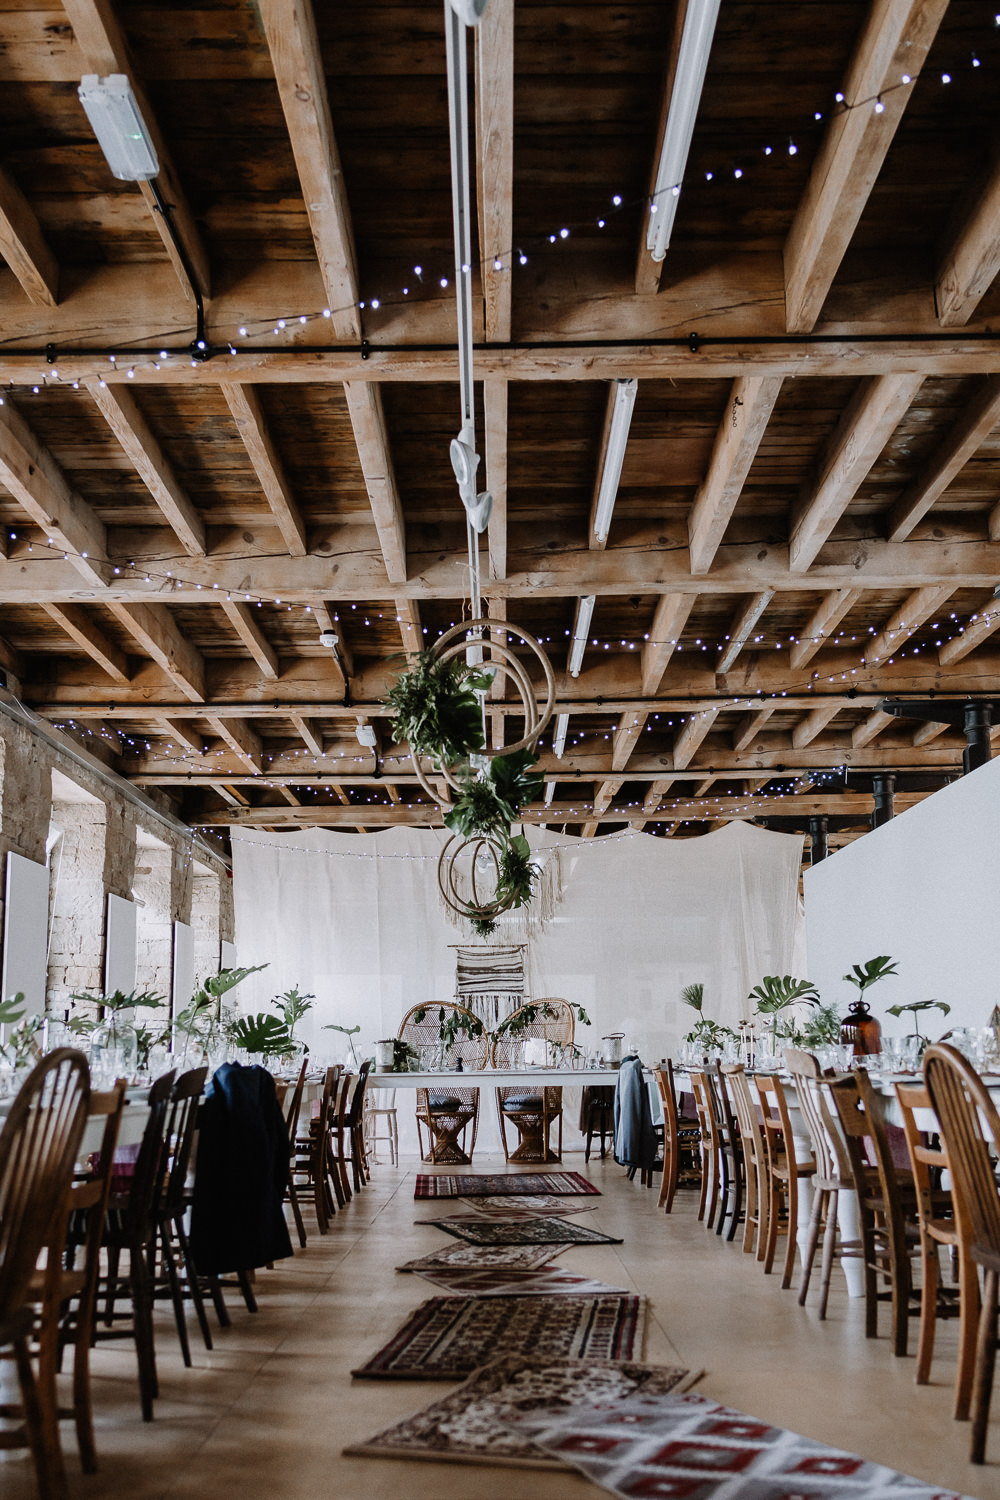 Bohemian Reception Room Decor Macramé Persian Rugs Hanging Hoops Greenery Foliage Peacock Chairs Botanical Industrial Wedding Caitlin and Jones Photography